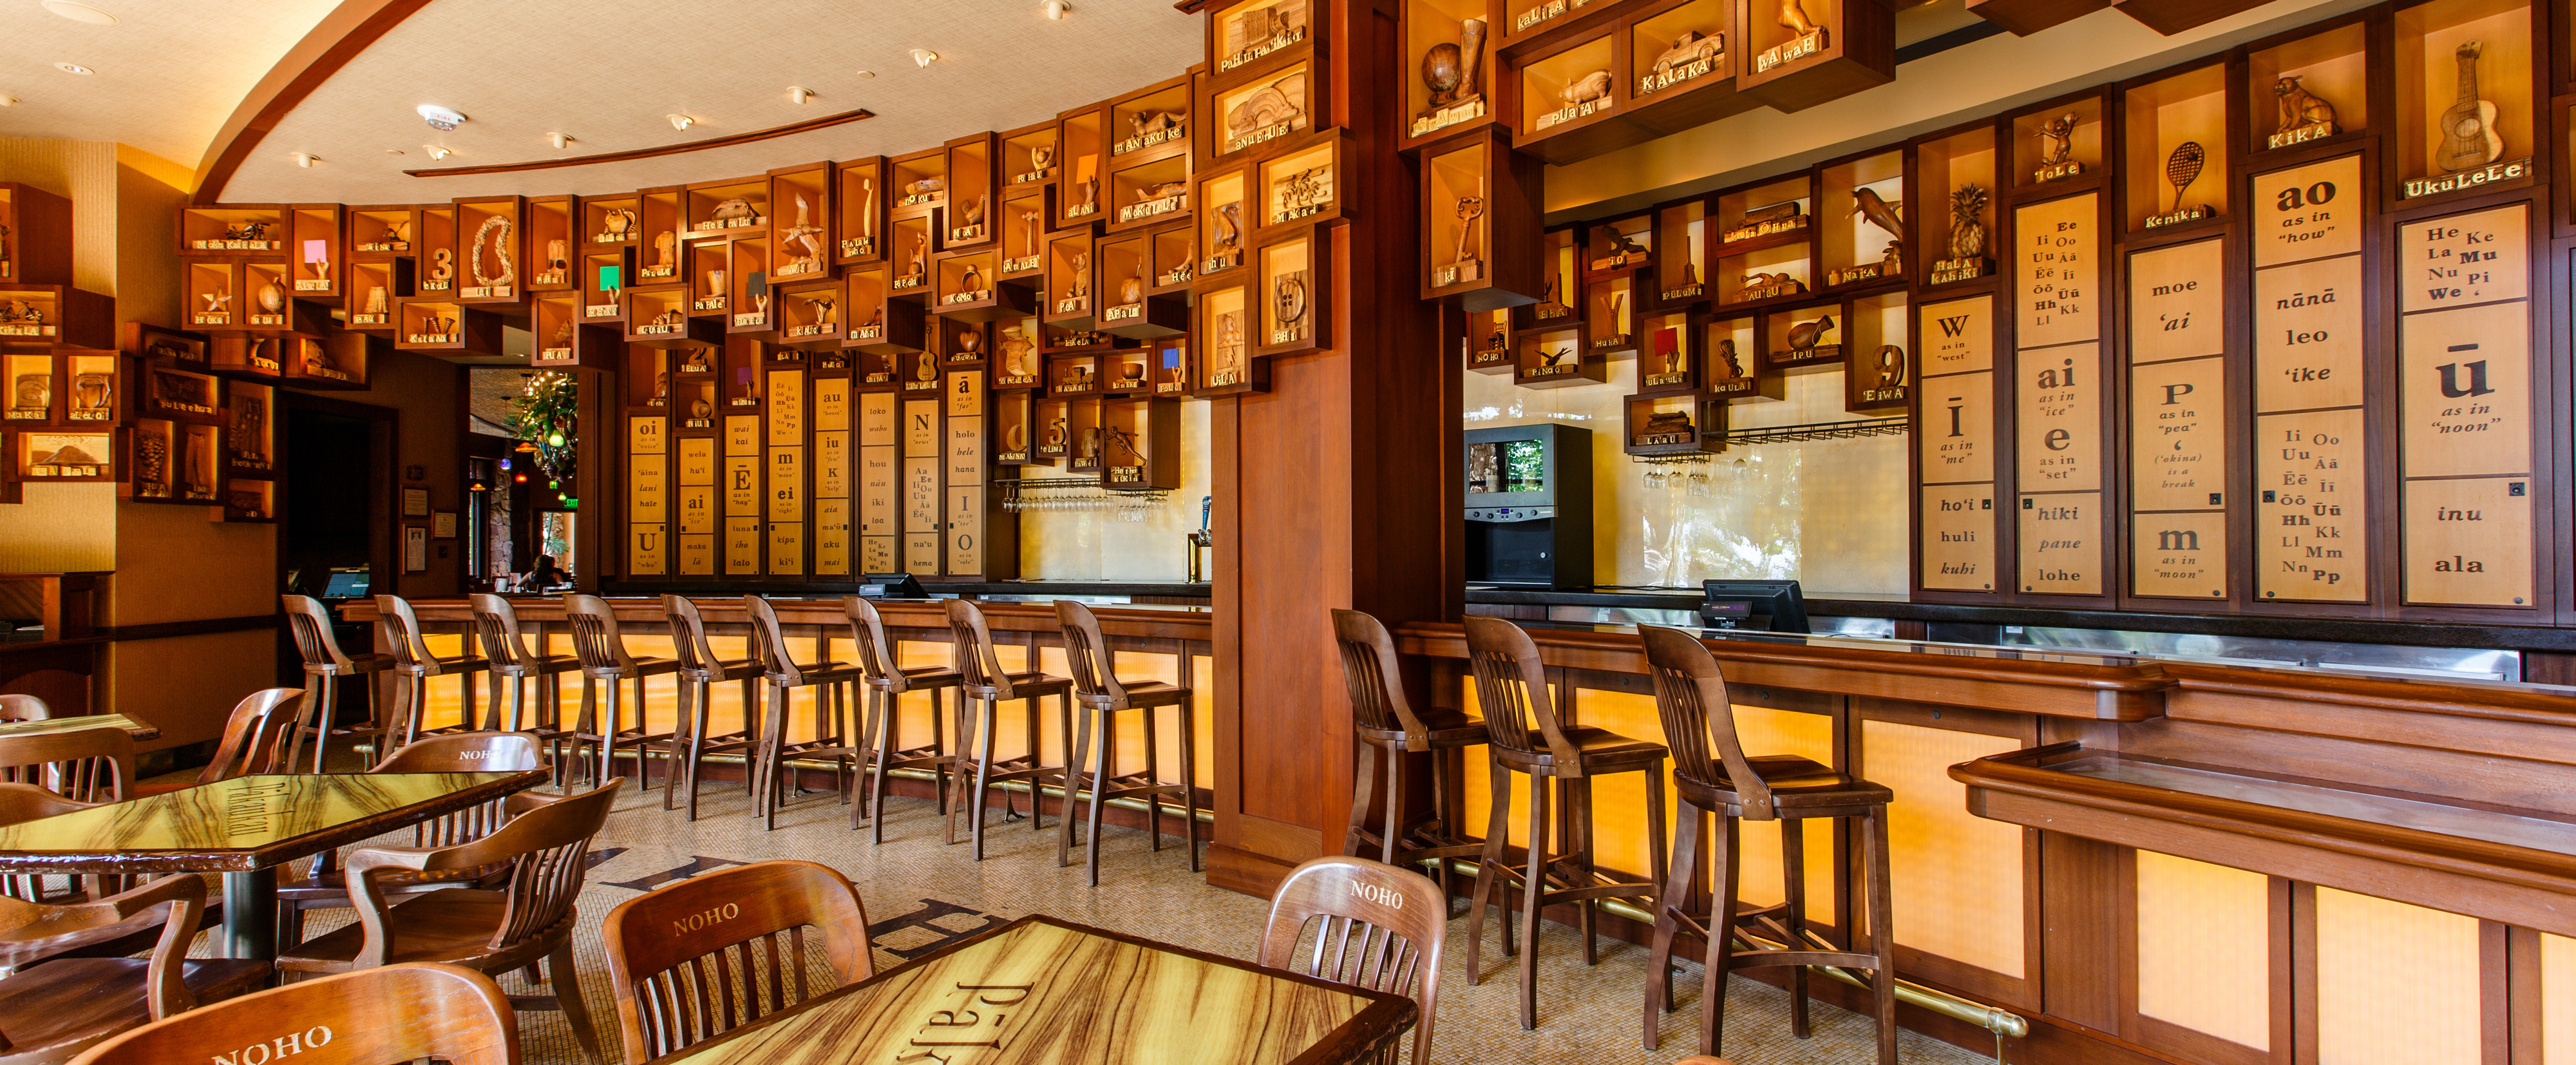 A long wood bar lined with chairs and wooden plaques featuring carved objects with Hawaiian words